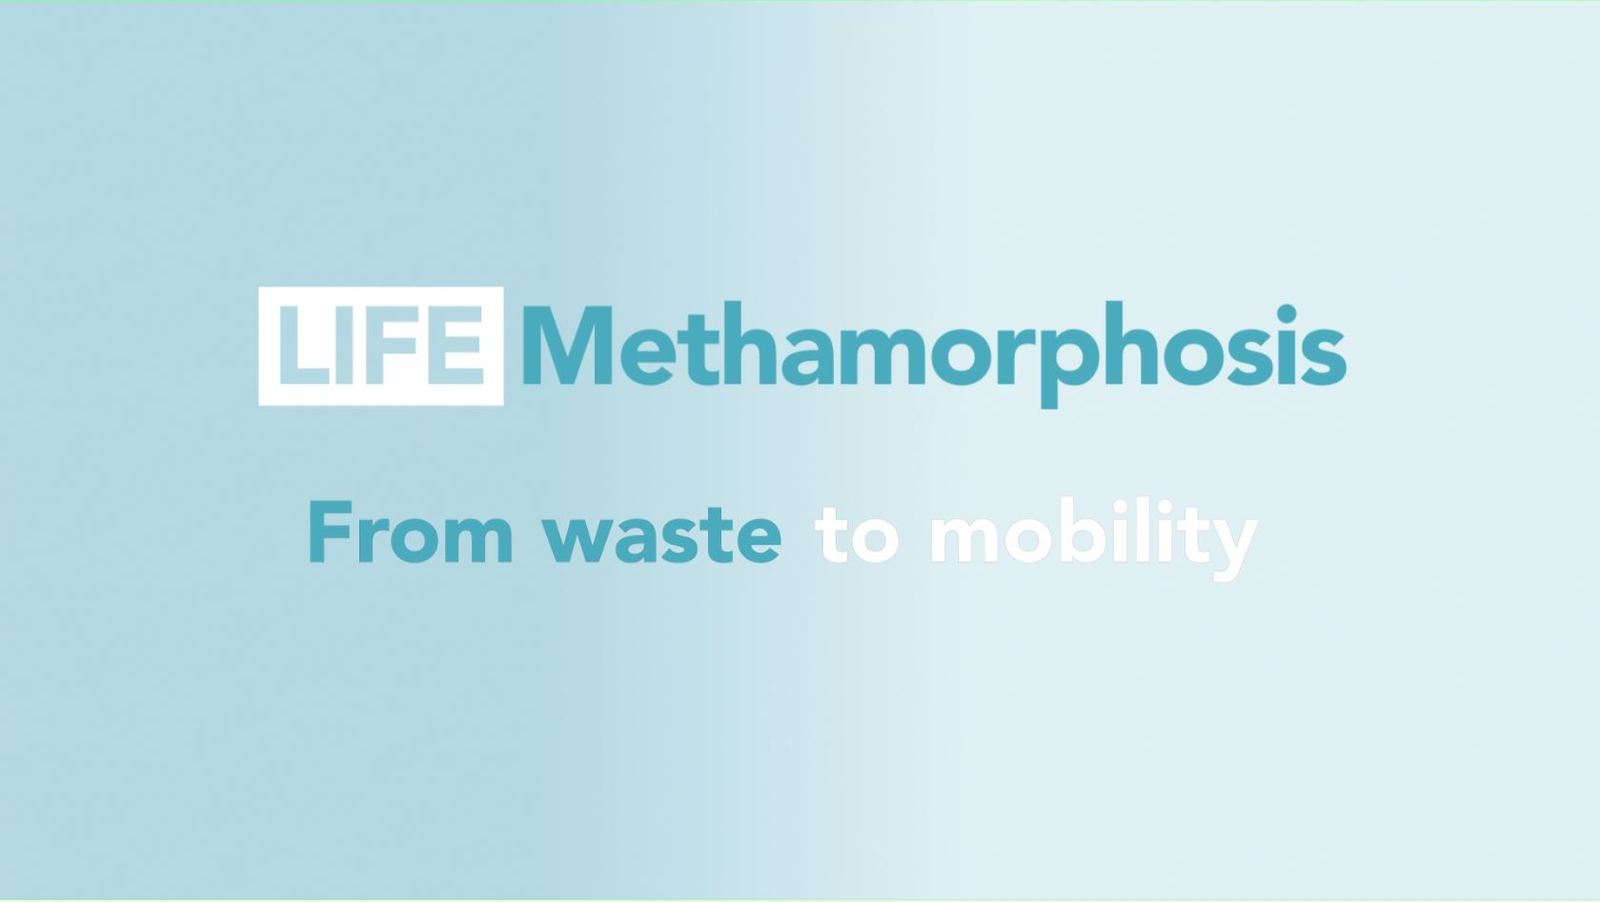 From waste to mobility